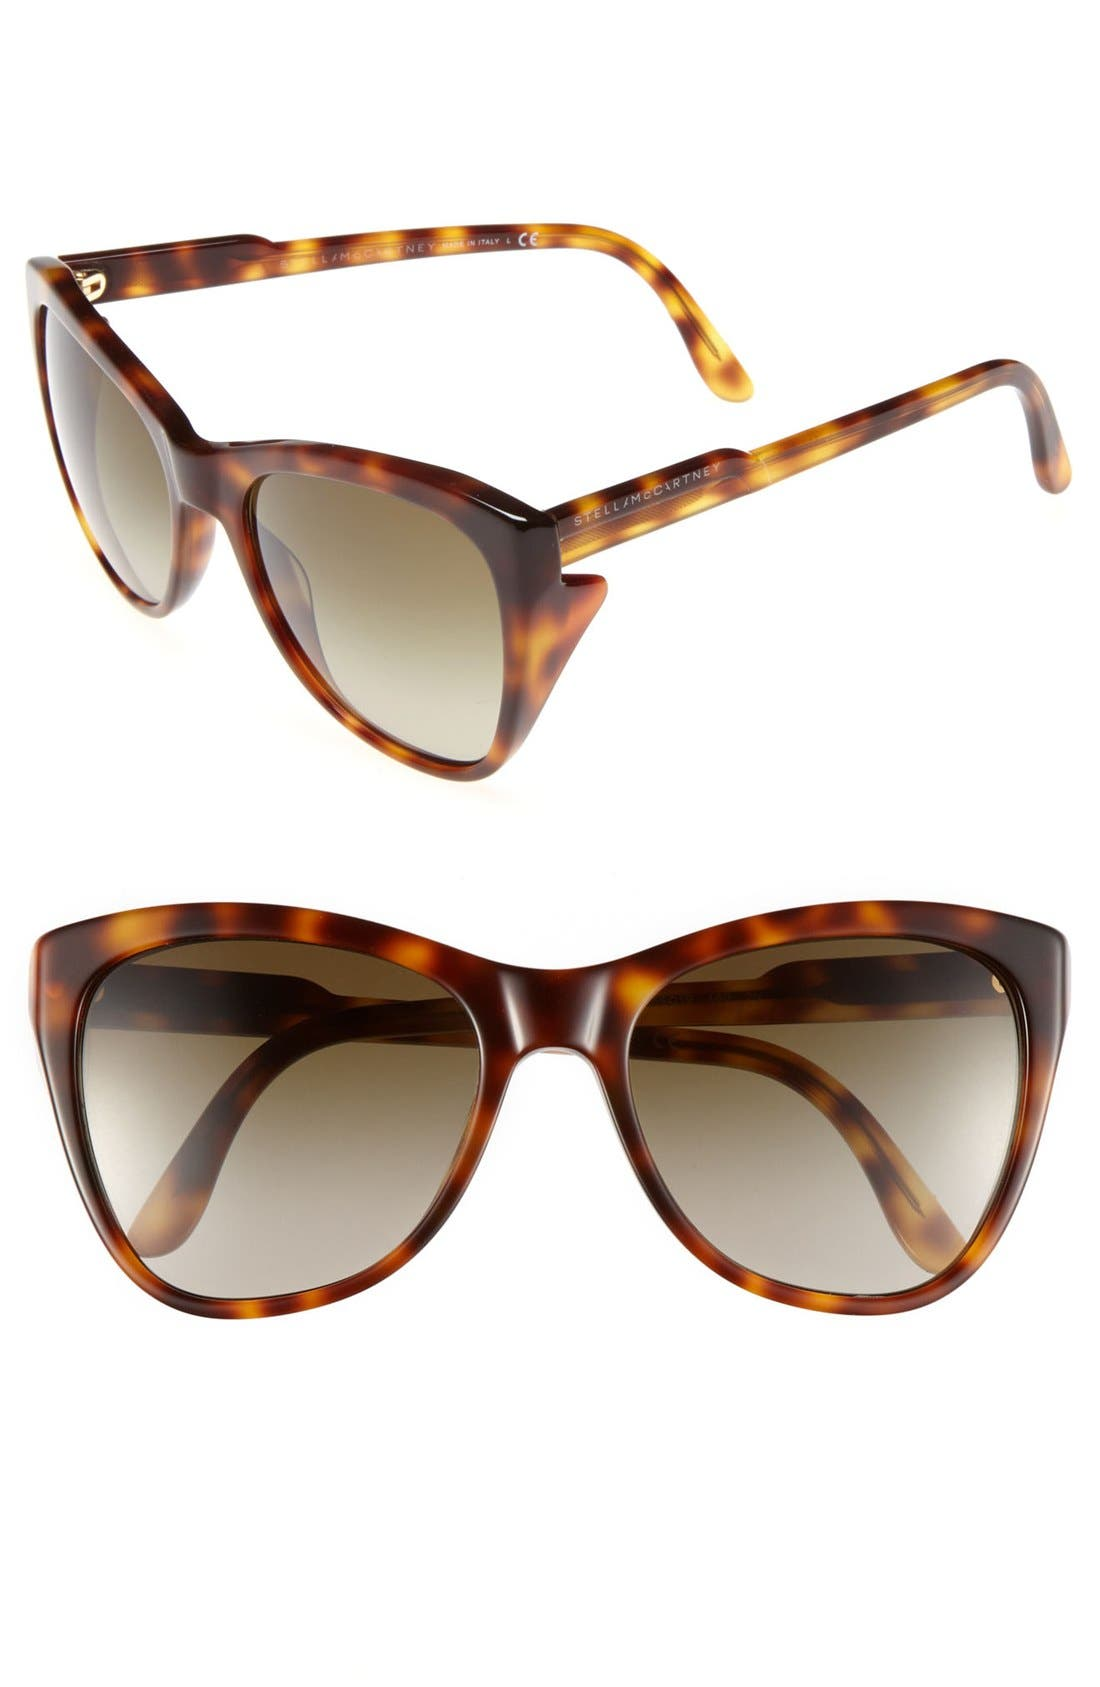 Main Image - Stella McCartney 56mm Retro Sunglasses